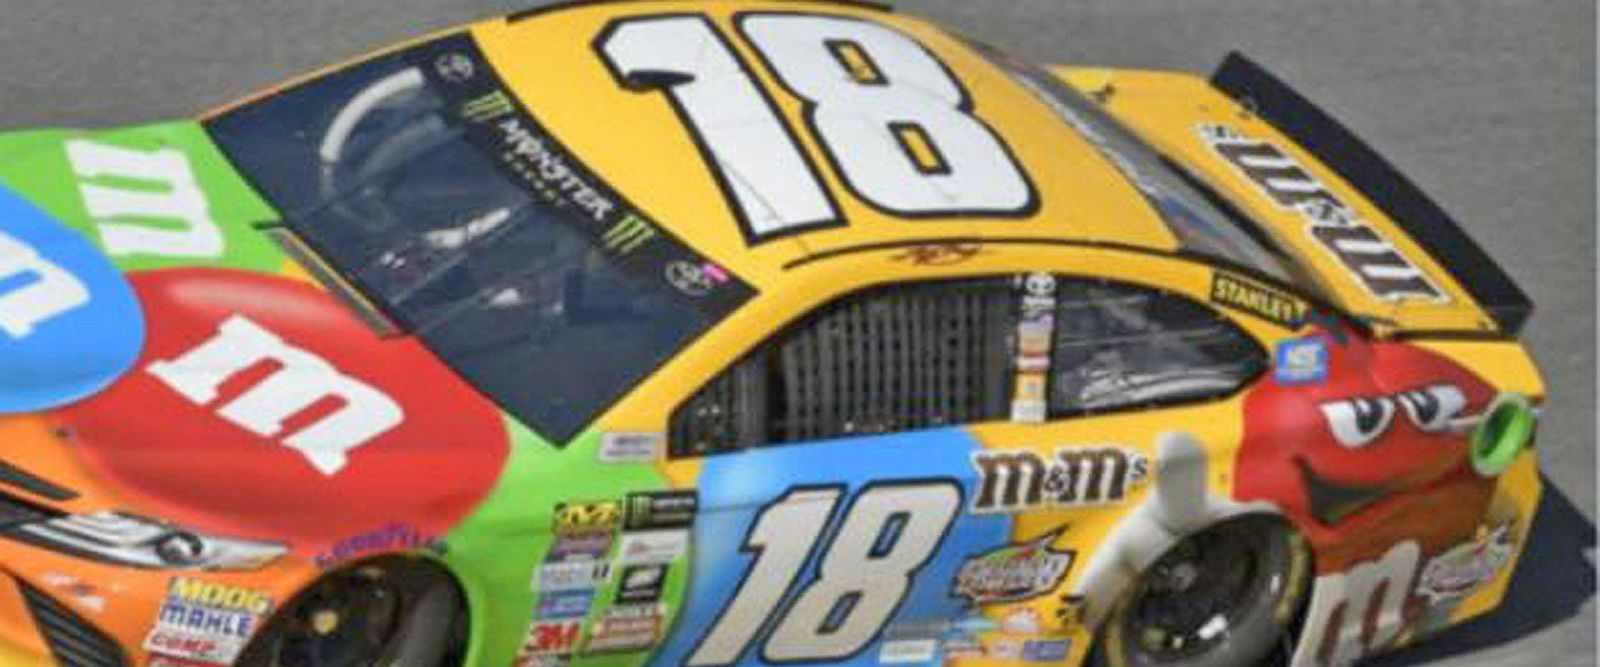 VIDEO: NASCAR viewership declining, new report finds